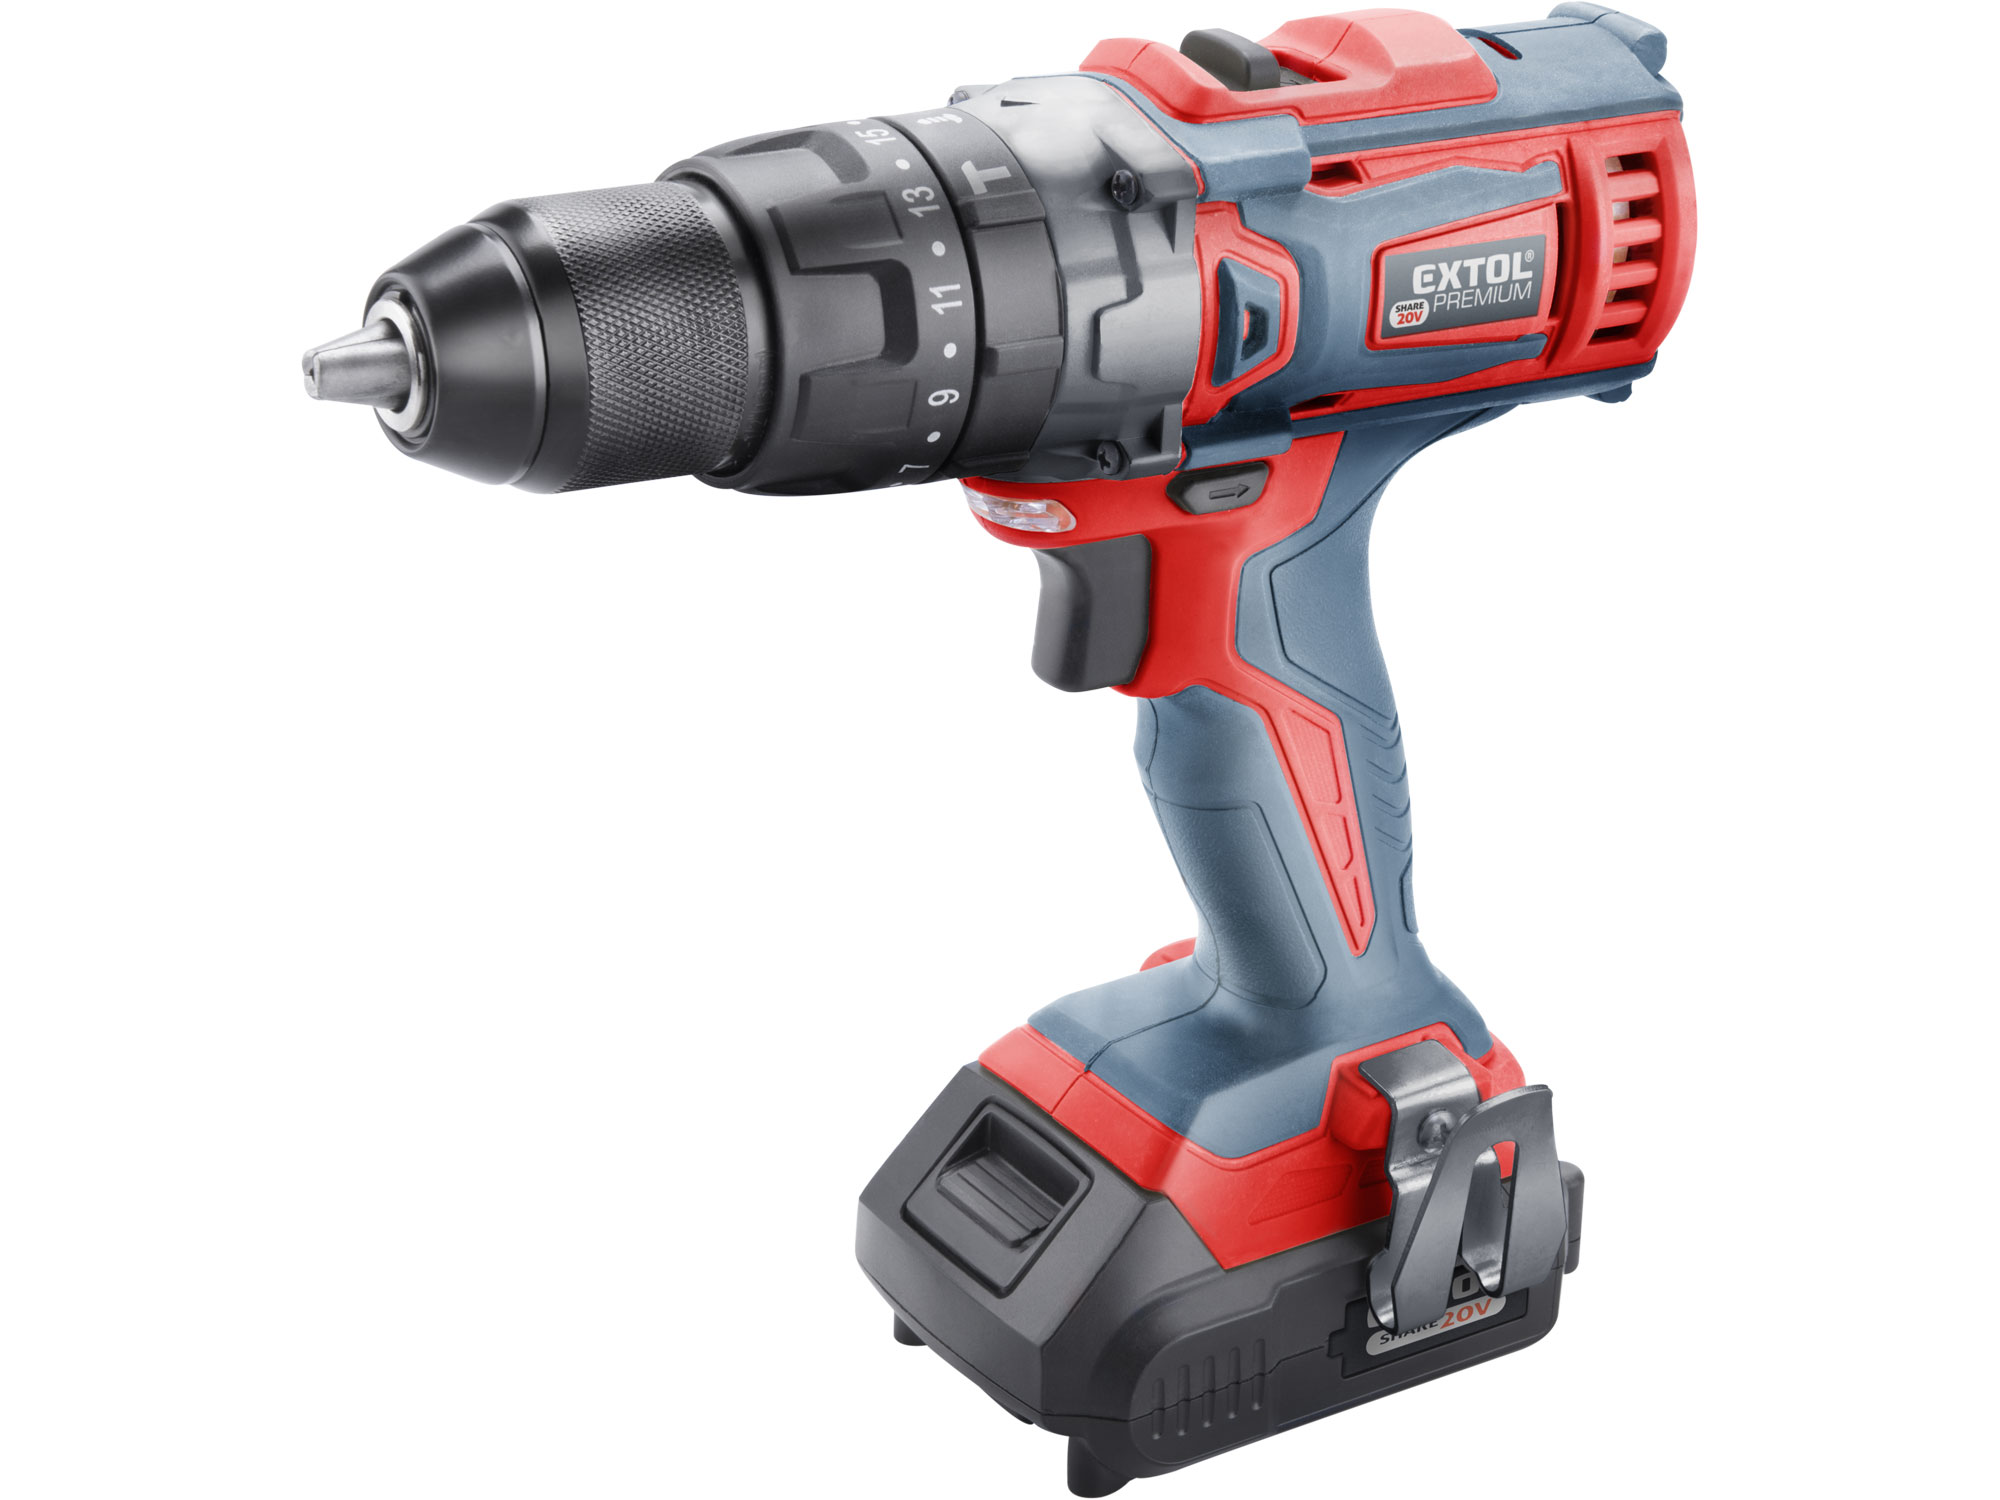 Cordless Drill, SHARE20V with hammer function, 2x2000mAh Batteries